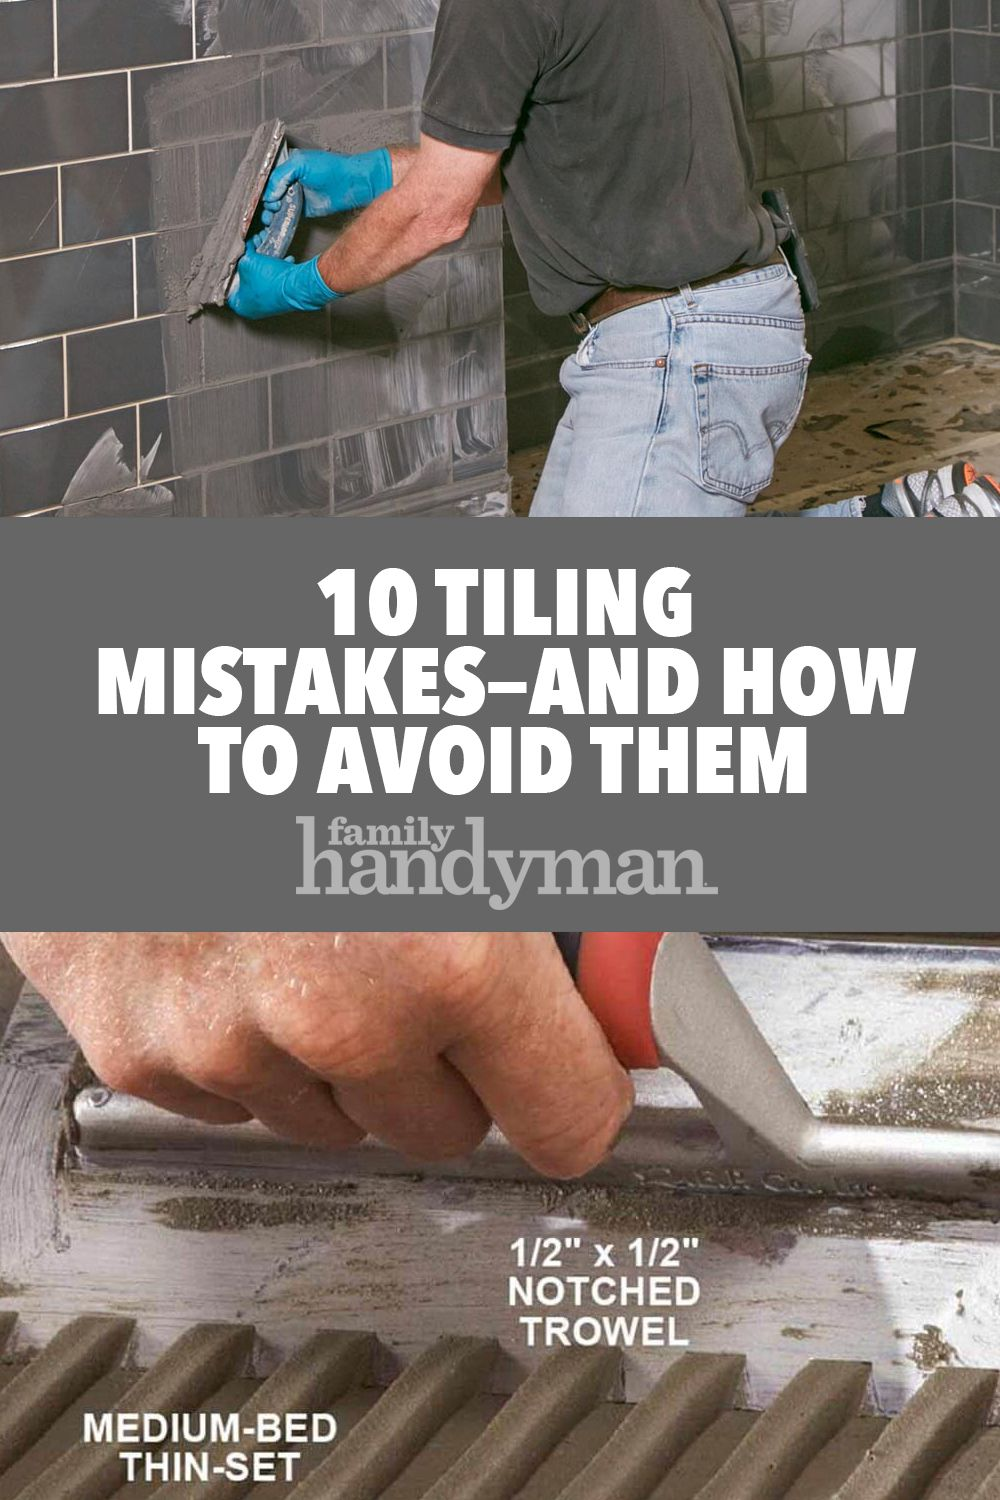 10 Common Tiling Mistakes And How To Avoid Them Home Improvement Contractors Home Improvement Home Improvement Projects